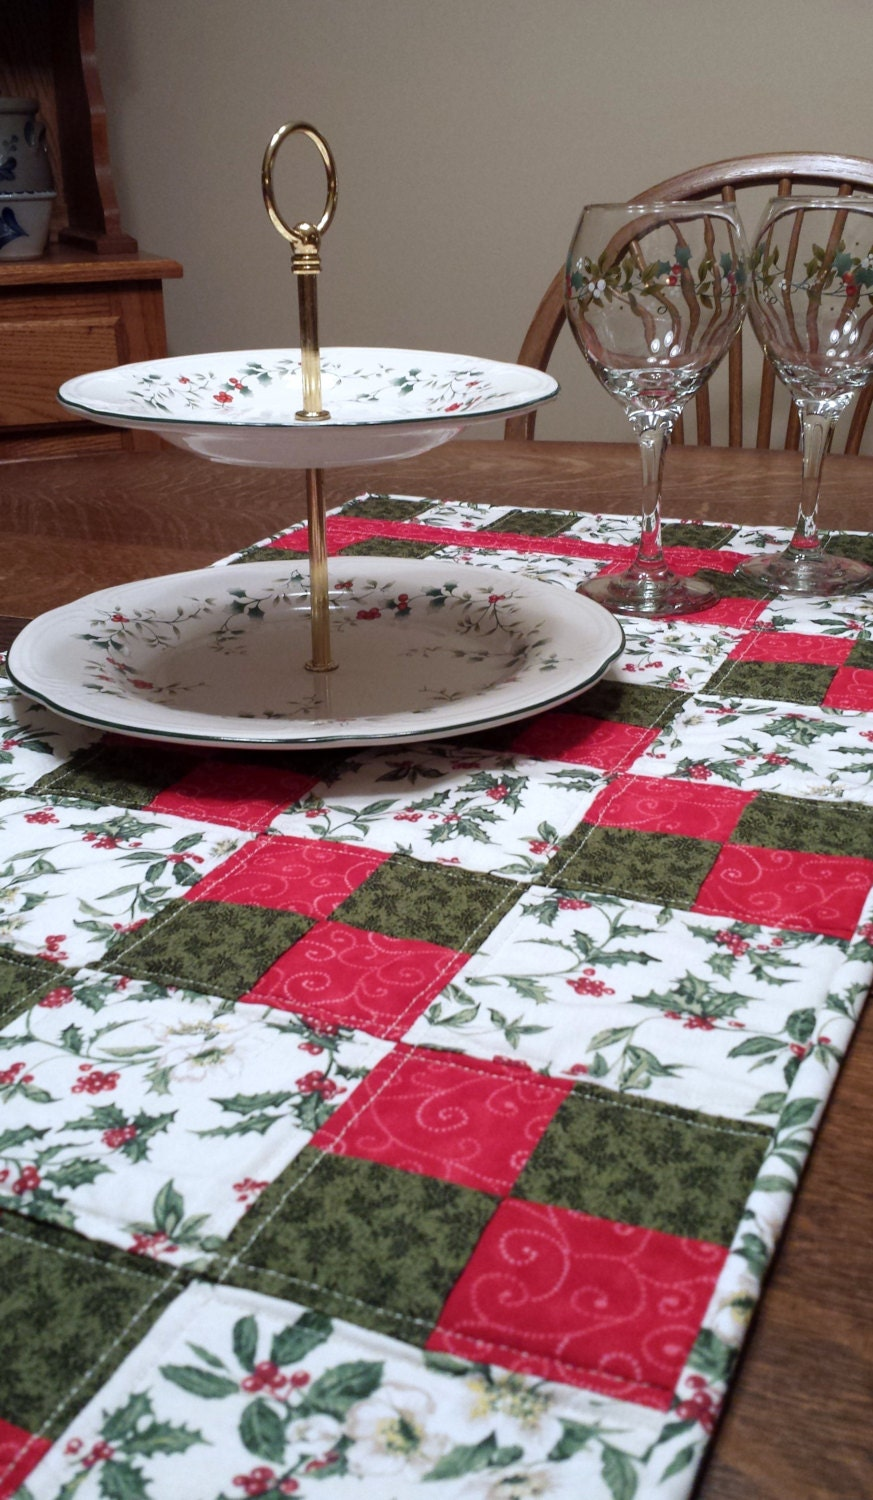 quilted christmas table runner tradtional patchwork festive. Black Bedroom Furniture Sets. Home Design Ideas